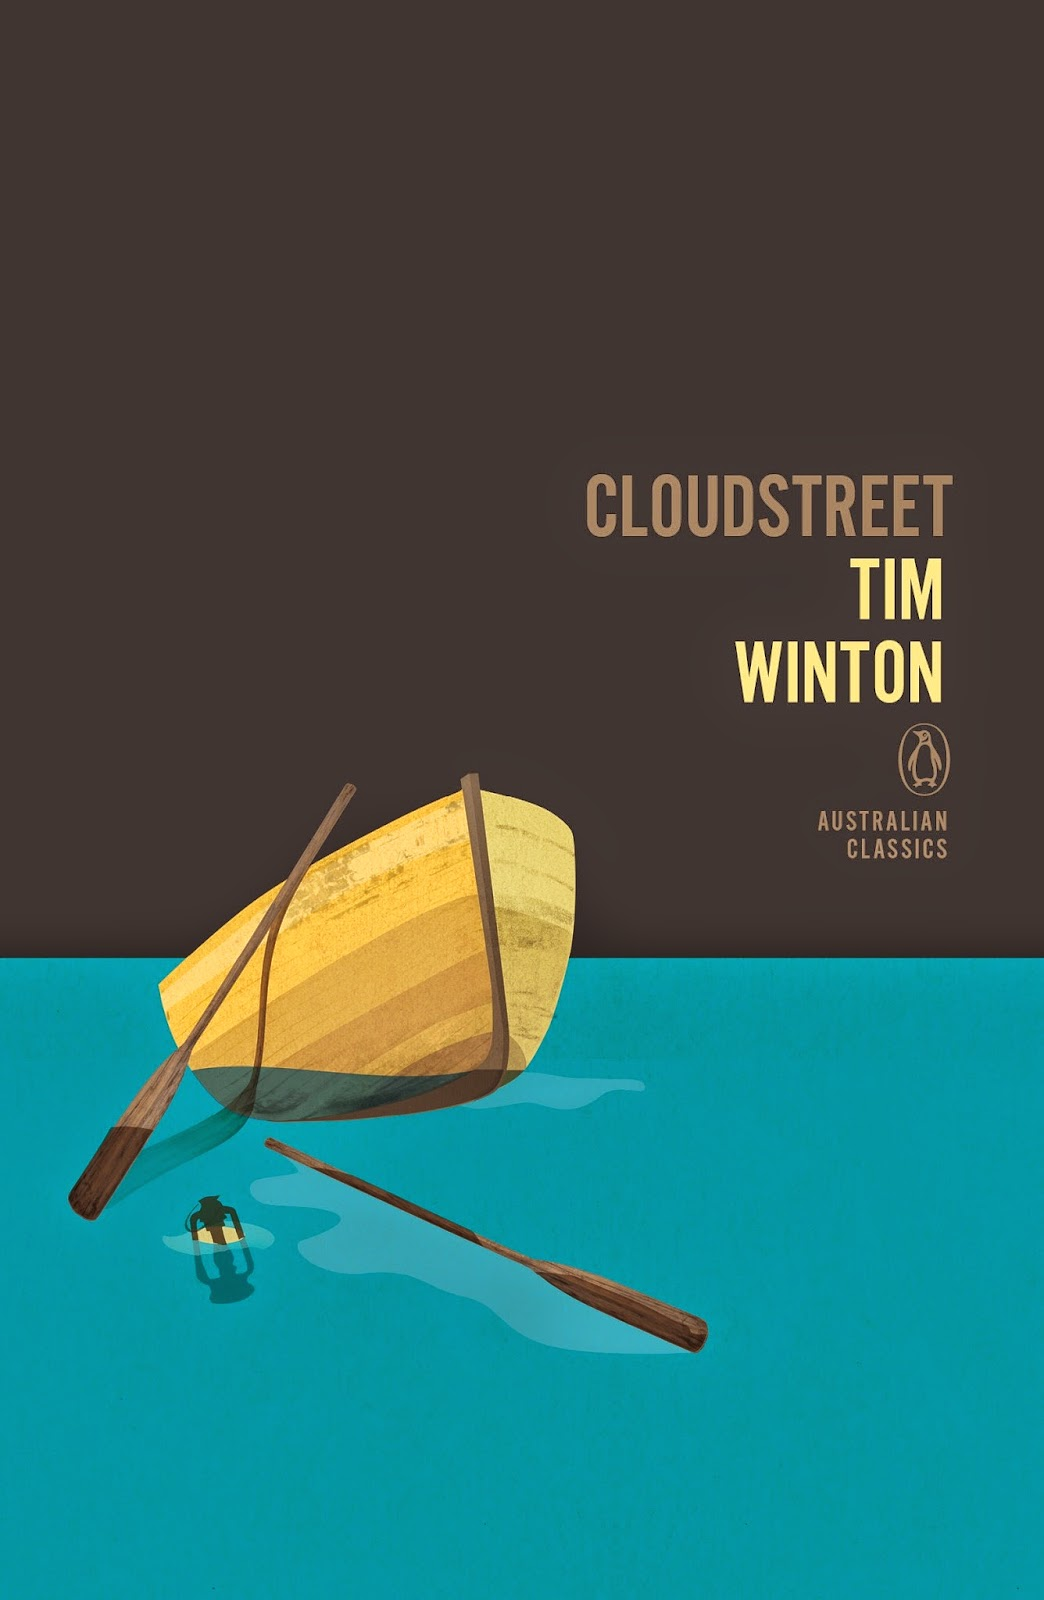 an analysis of the novel cloudstreet by tim winton The values and attitudes endorsed by a novel can best be identified through an examination of its conclusion and this is evident in the novel cloudstreet by tim winton through close analysis of its conclusion, it can be seen that the main values and a.